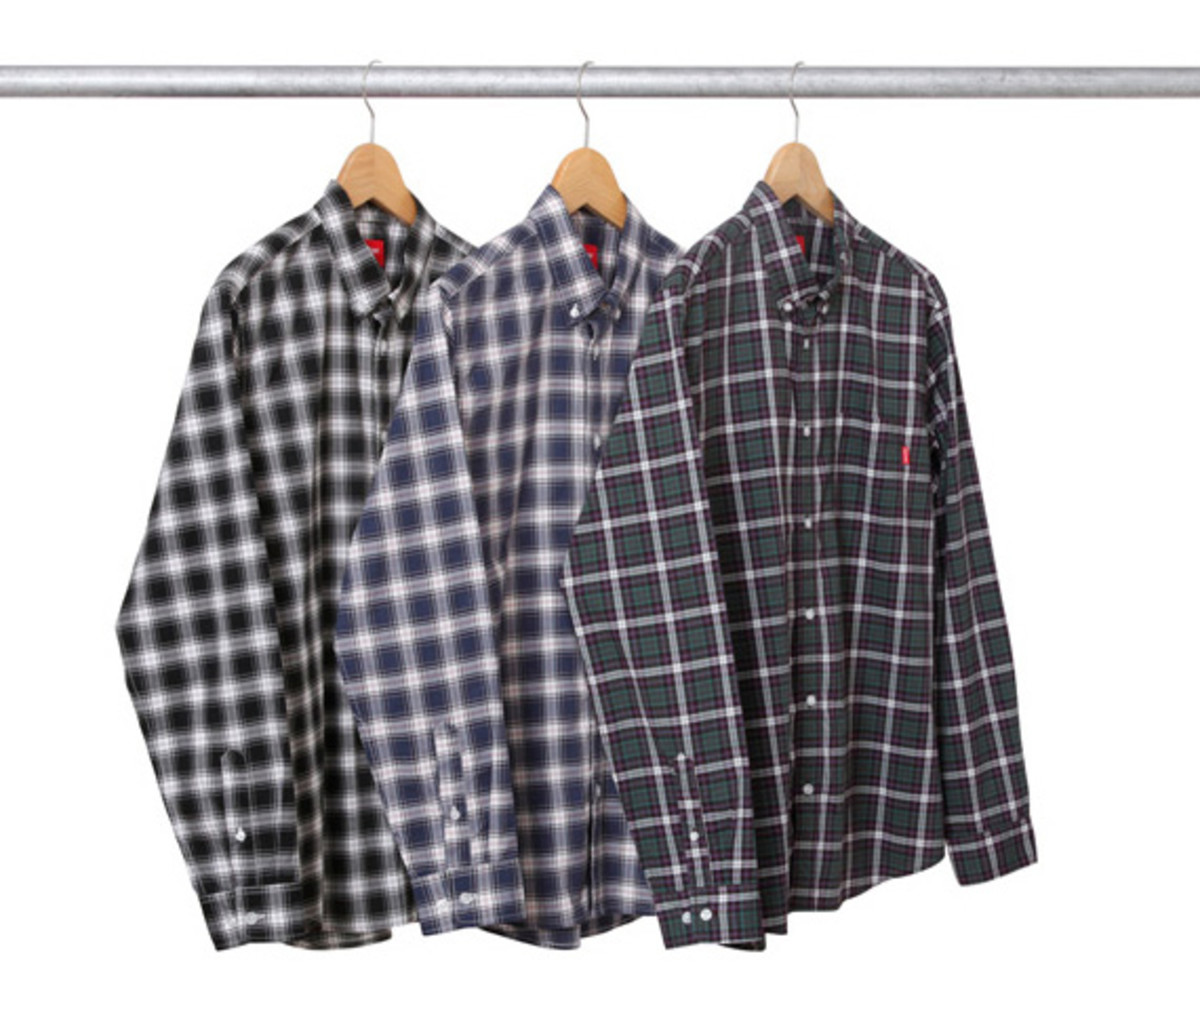 supreme_fw10_collection_apparel_080